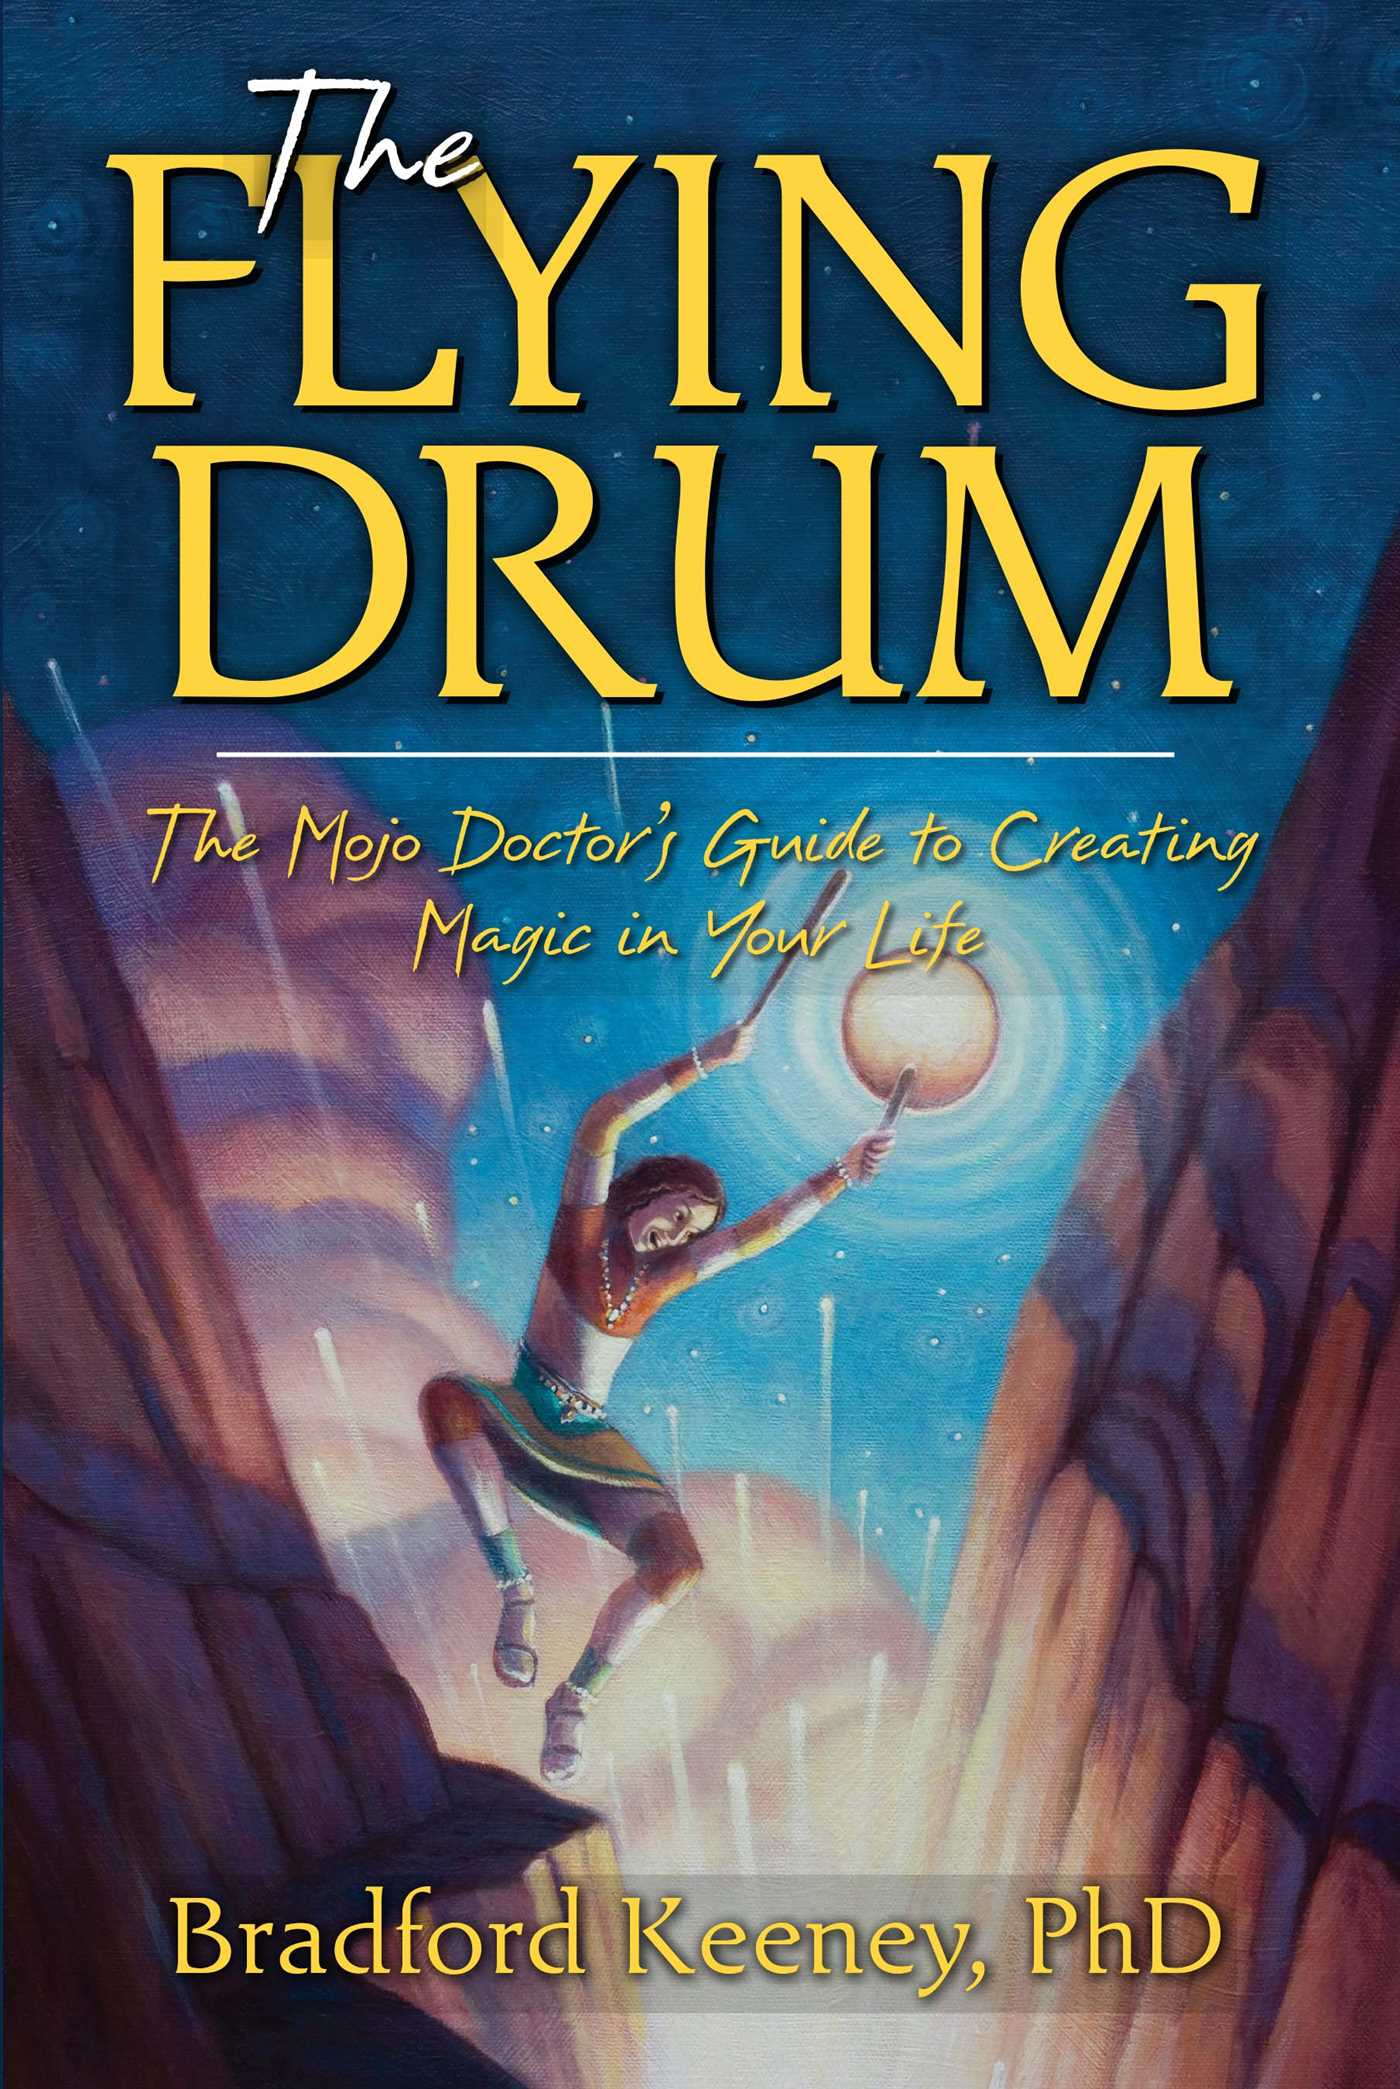 The flying drum 9781451610666 hr